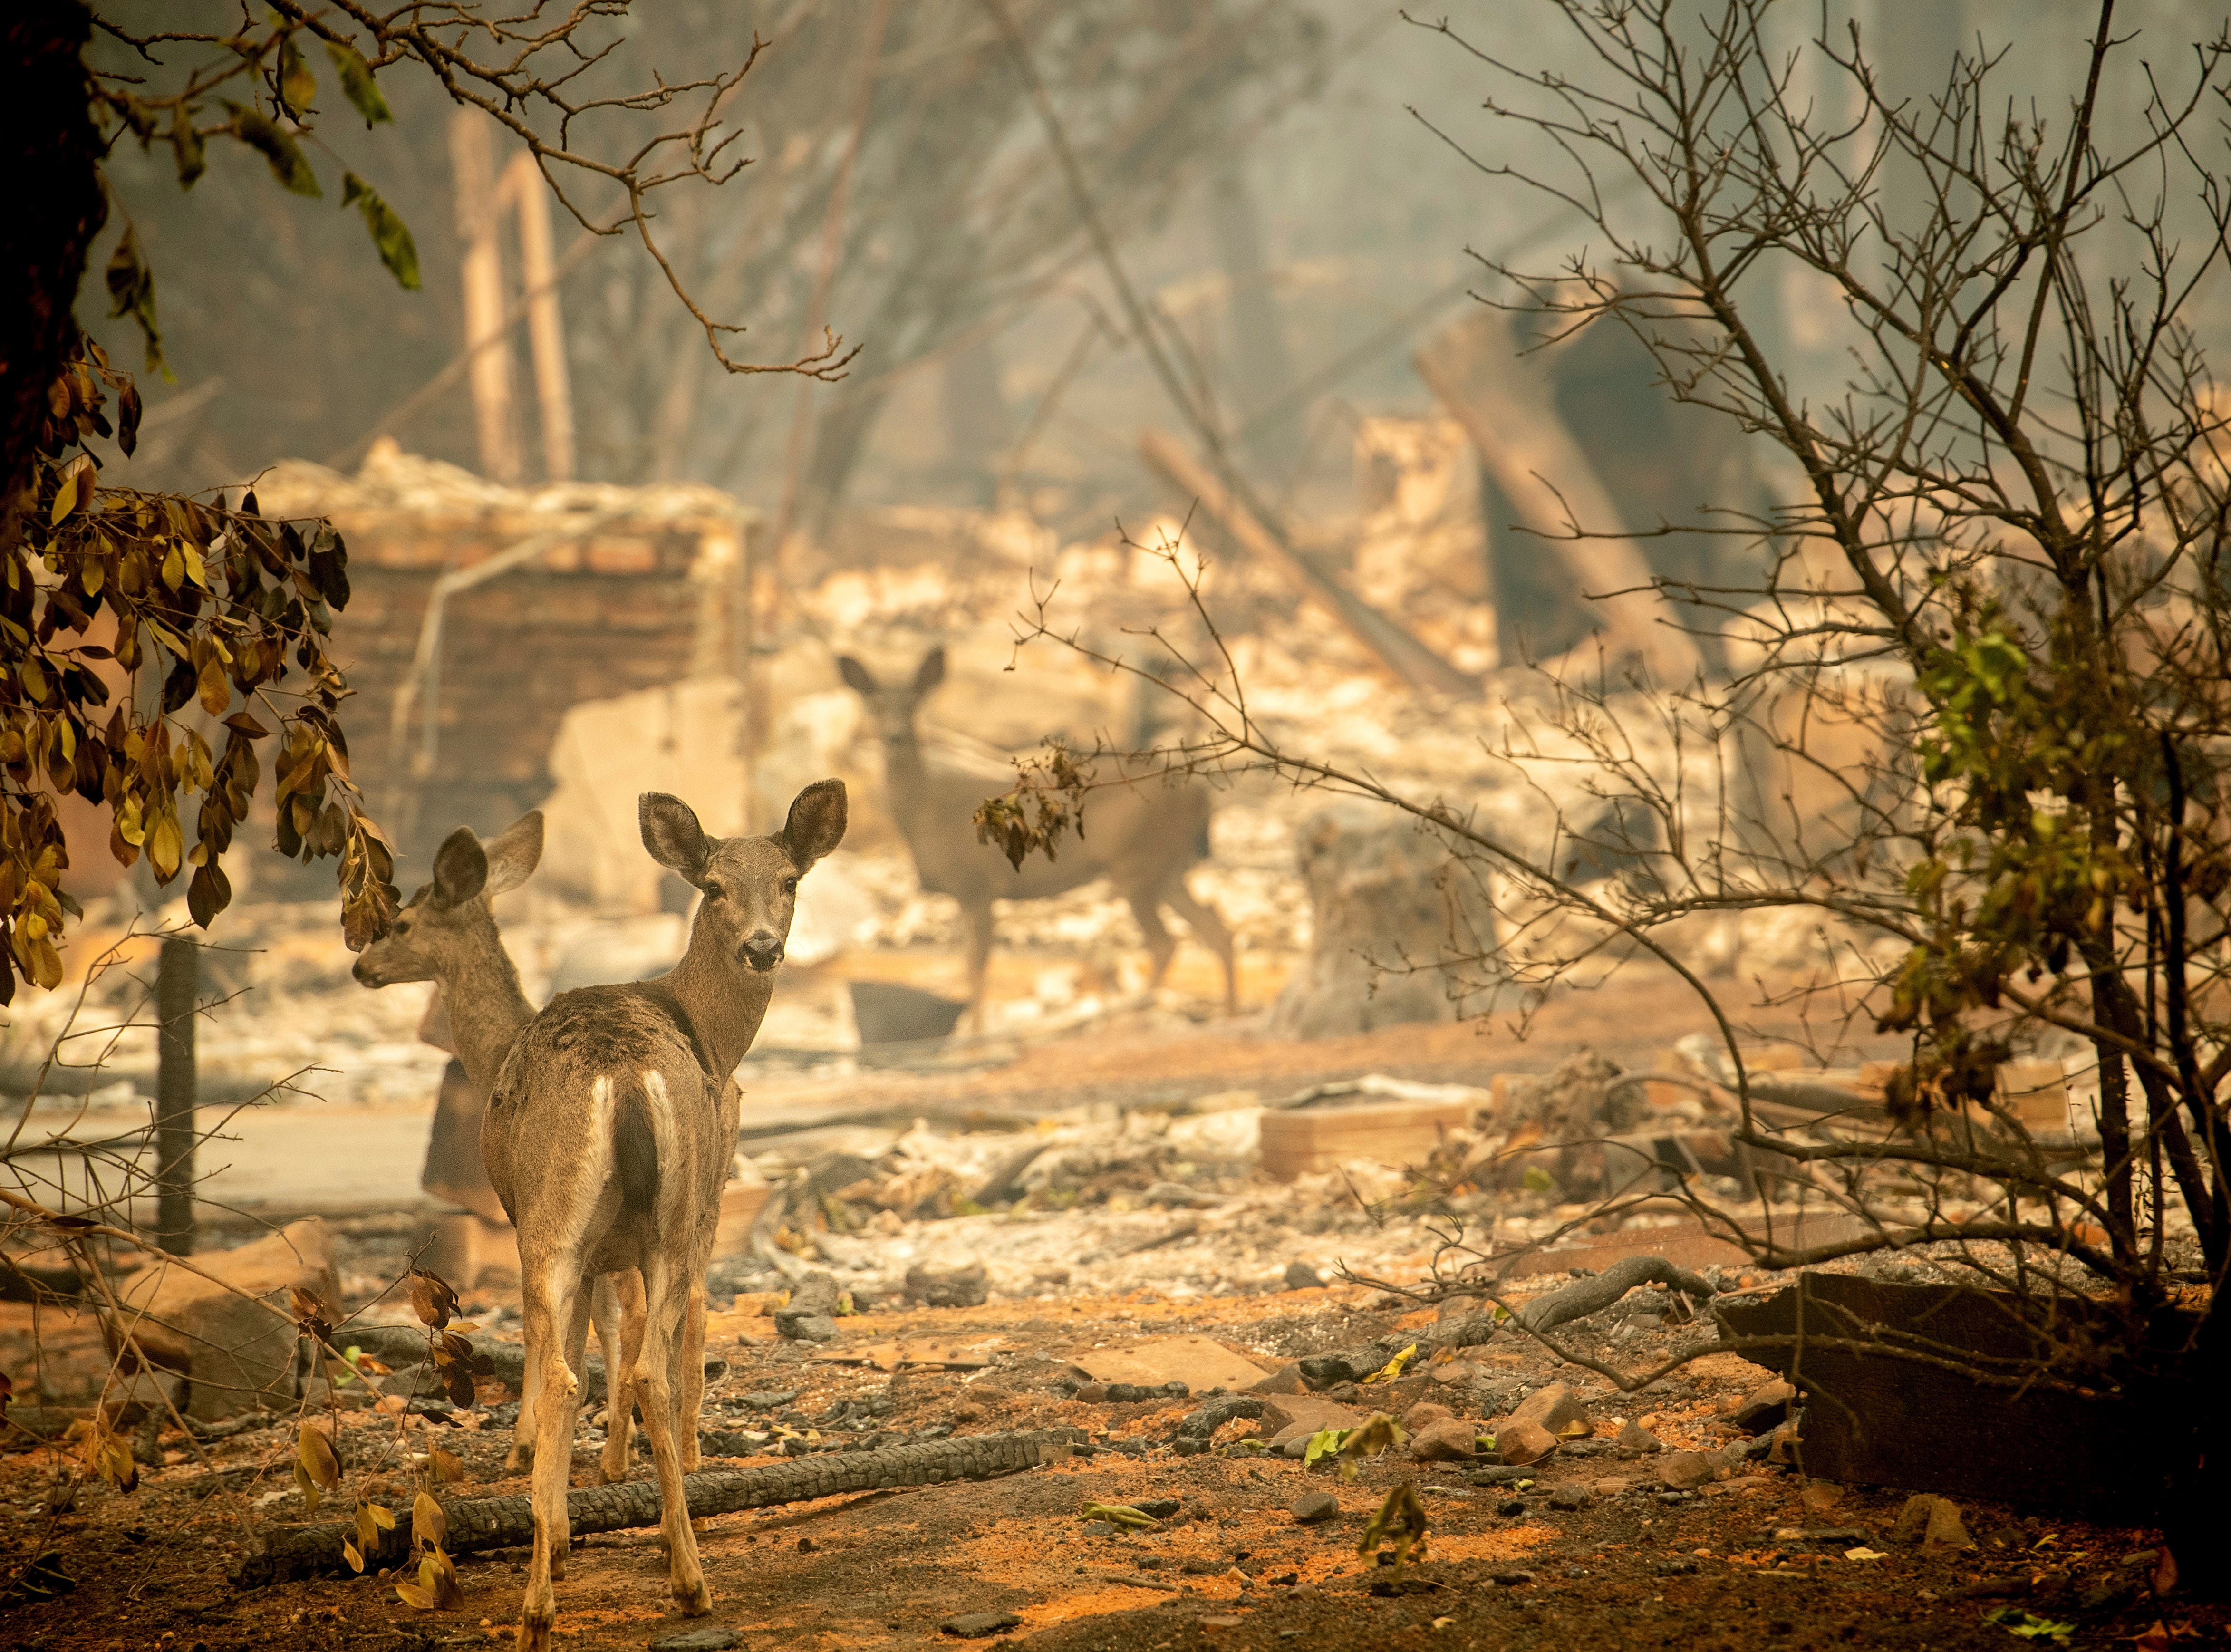 Deer walk past a gutted home in Paradise, Calif., on Saturday, Nov. 10, 2018. A ferocious wildfire consumed entire neighborhoods in the Northern California town as residents fled.